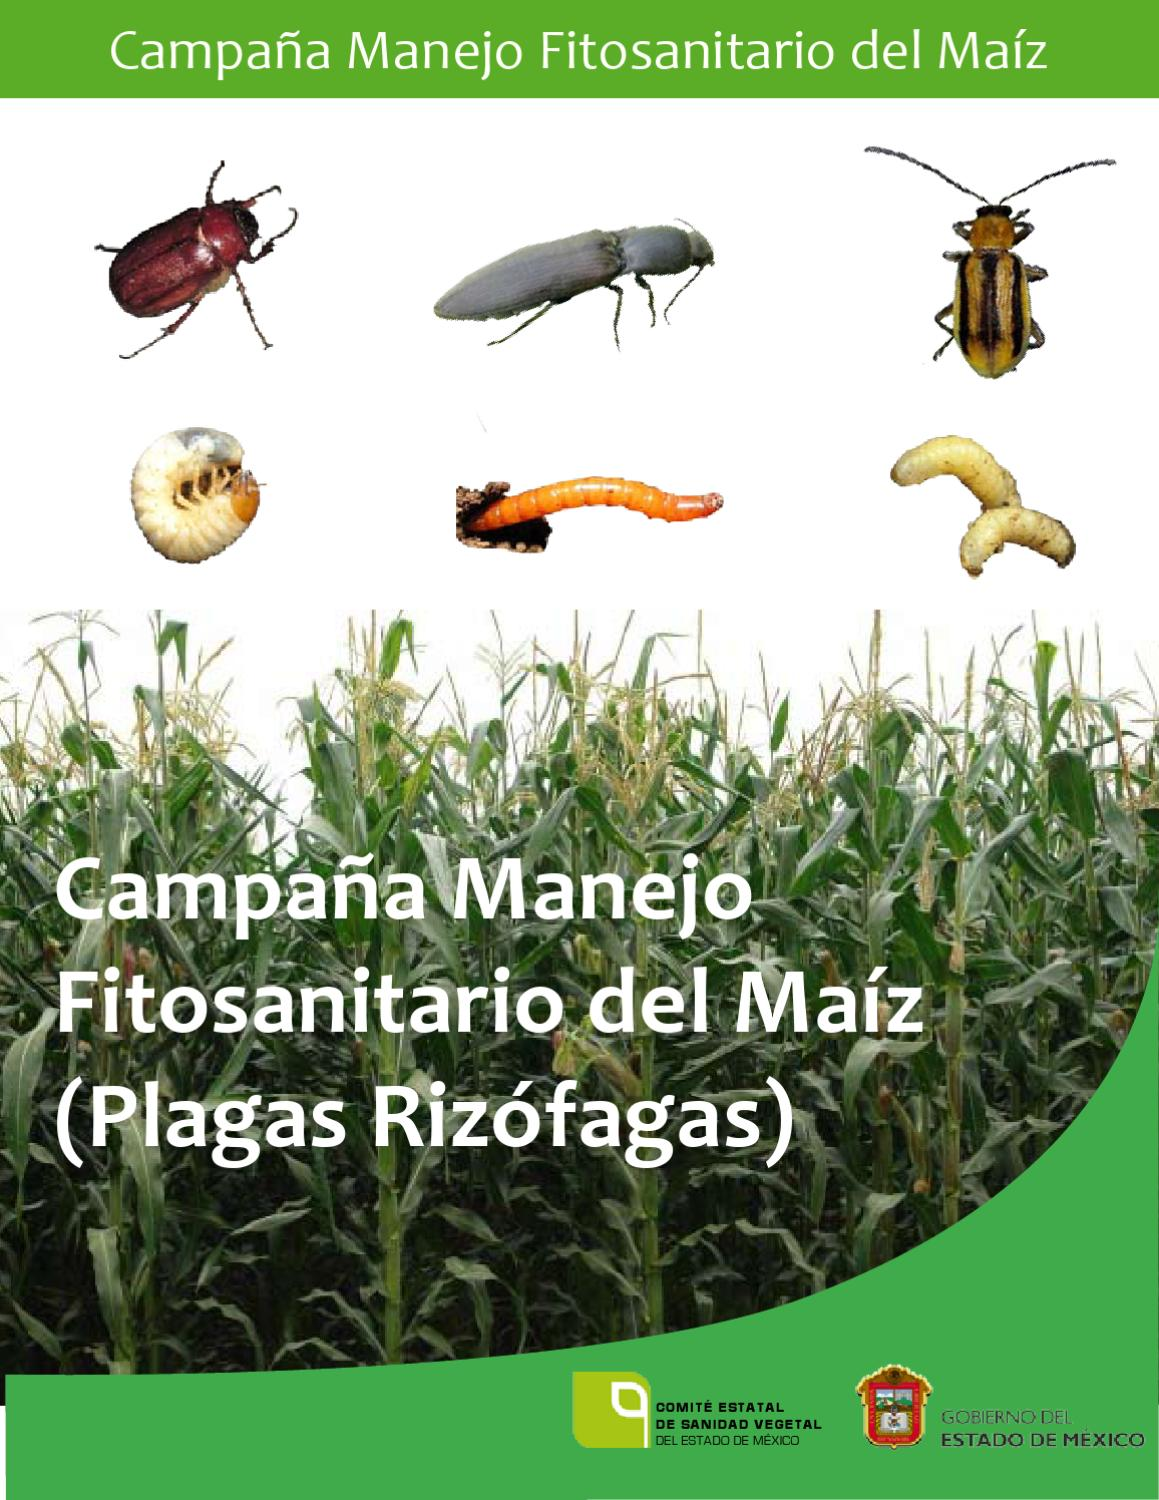 Plagas Rizofagas By Miguel Angel Issuu